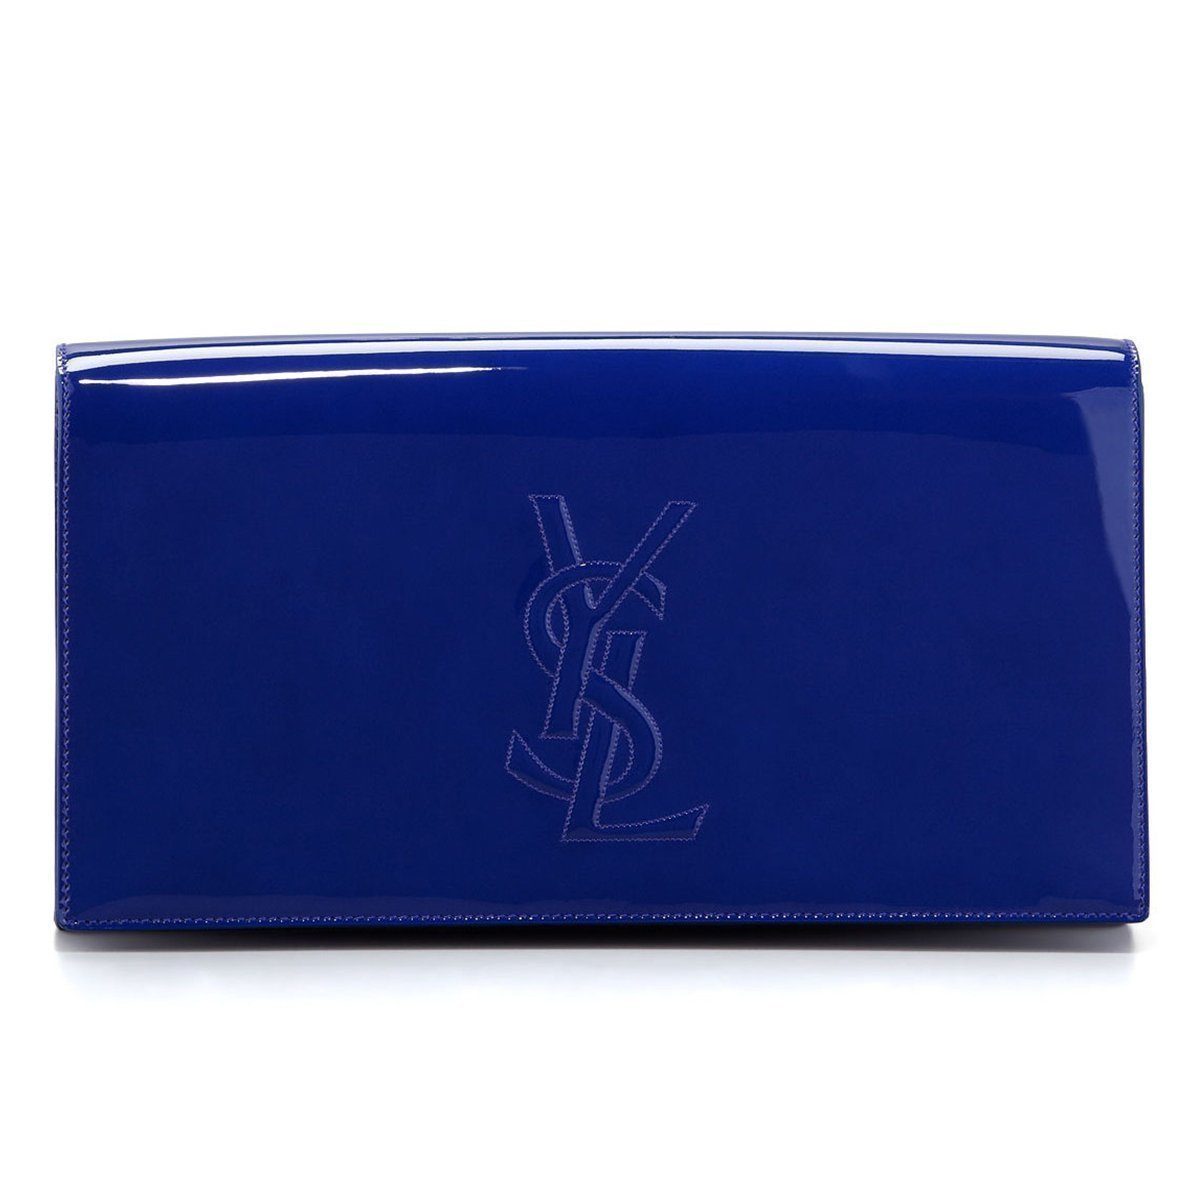 YSL Saint Laurent Belle Du Jour Neon Blue Patent Leather Clutch Handbag 361120